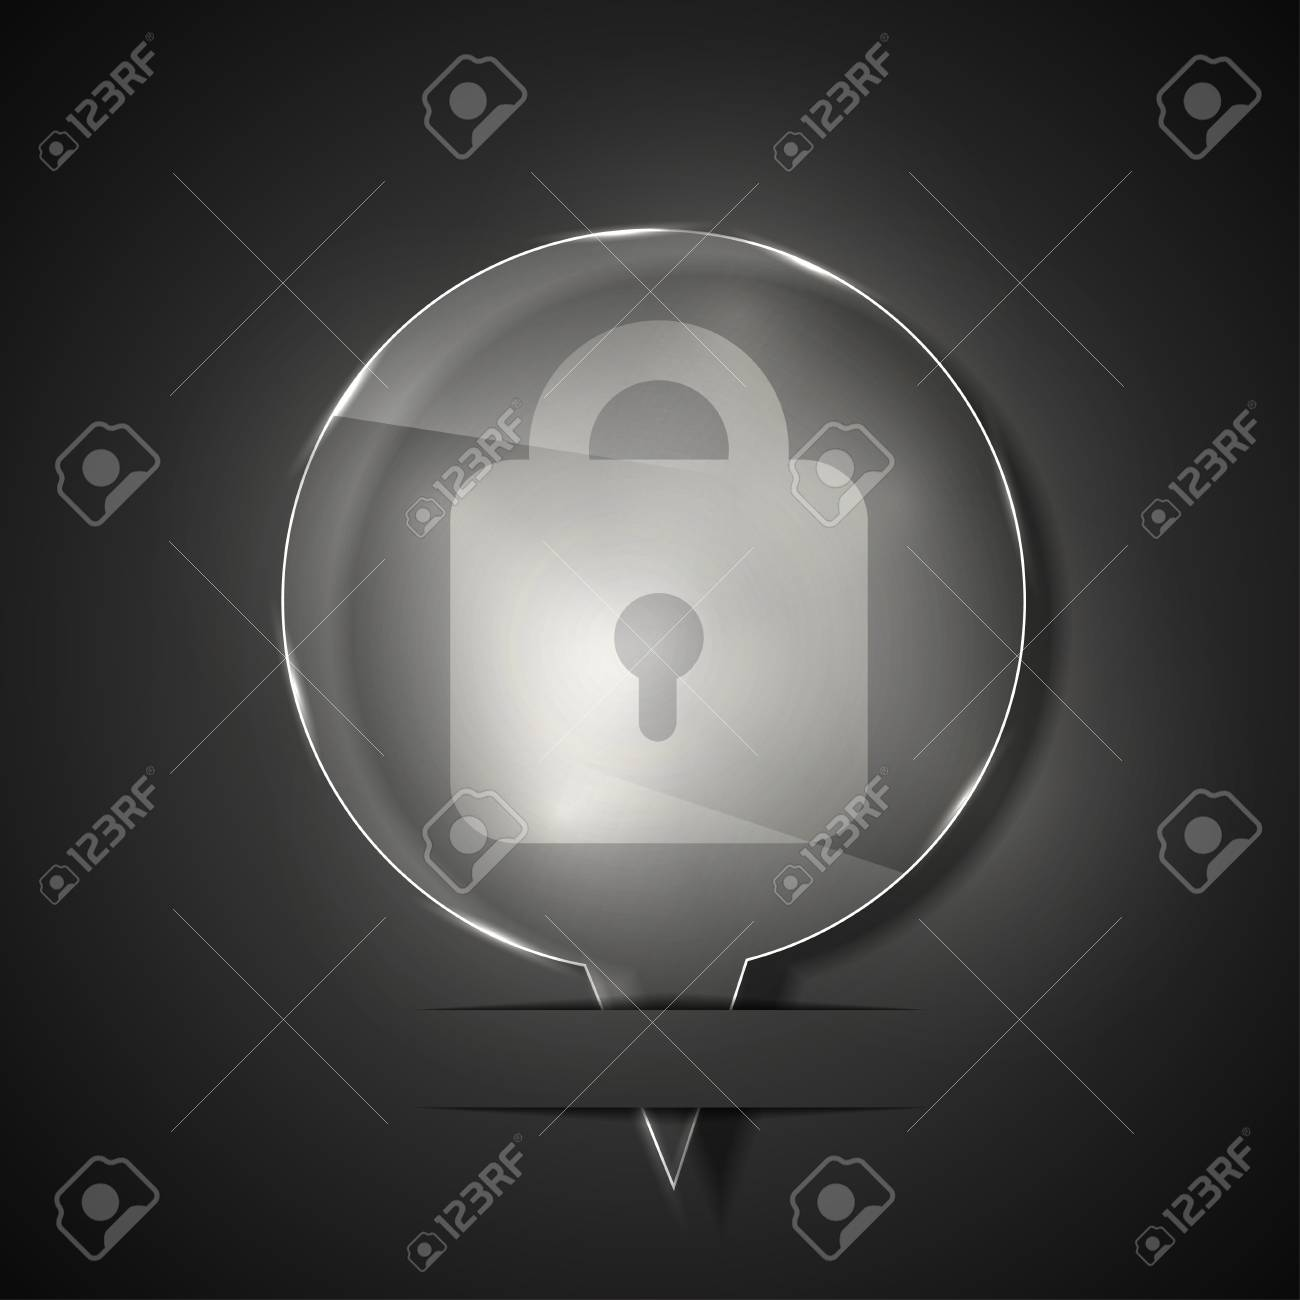 glass lock icon on gray background. Stock Vector - 15145529